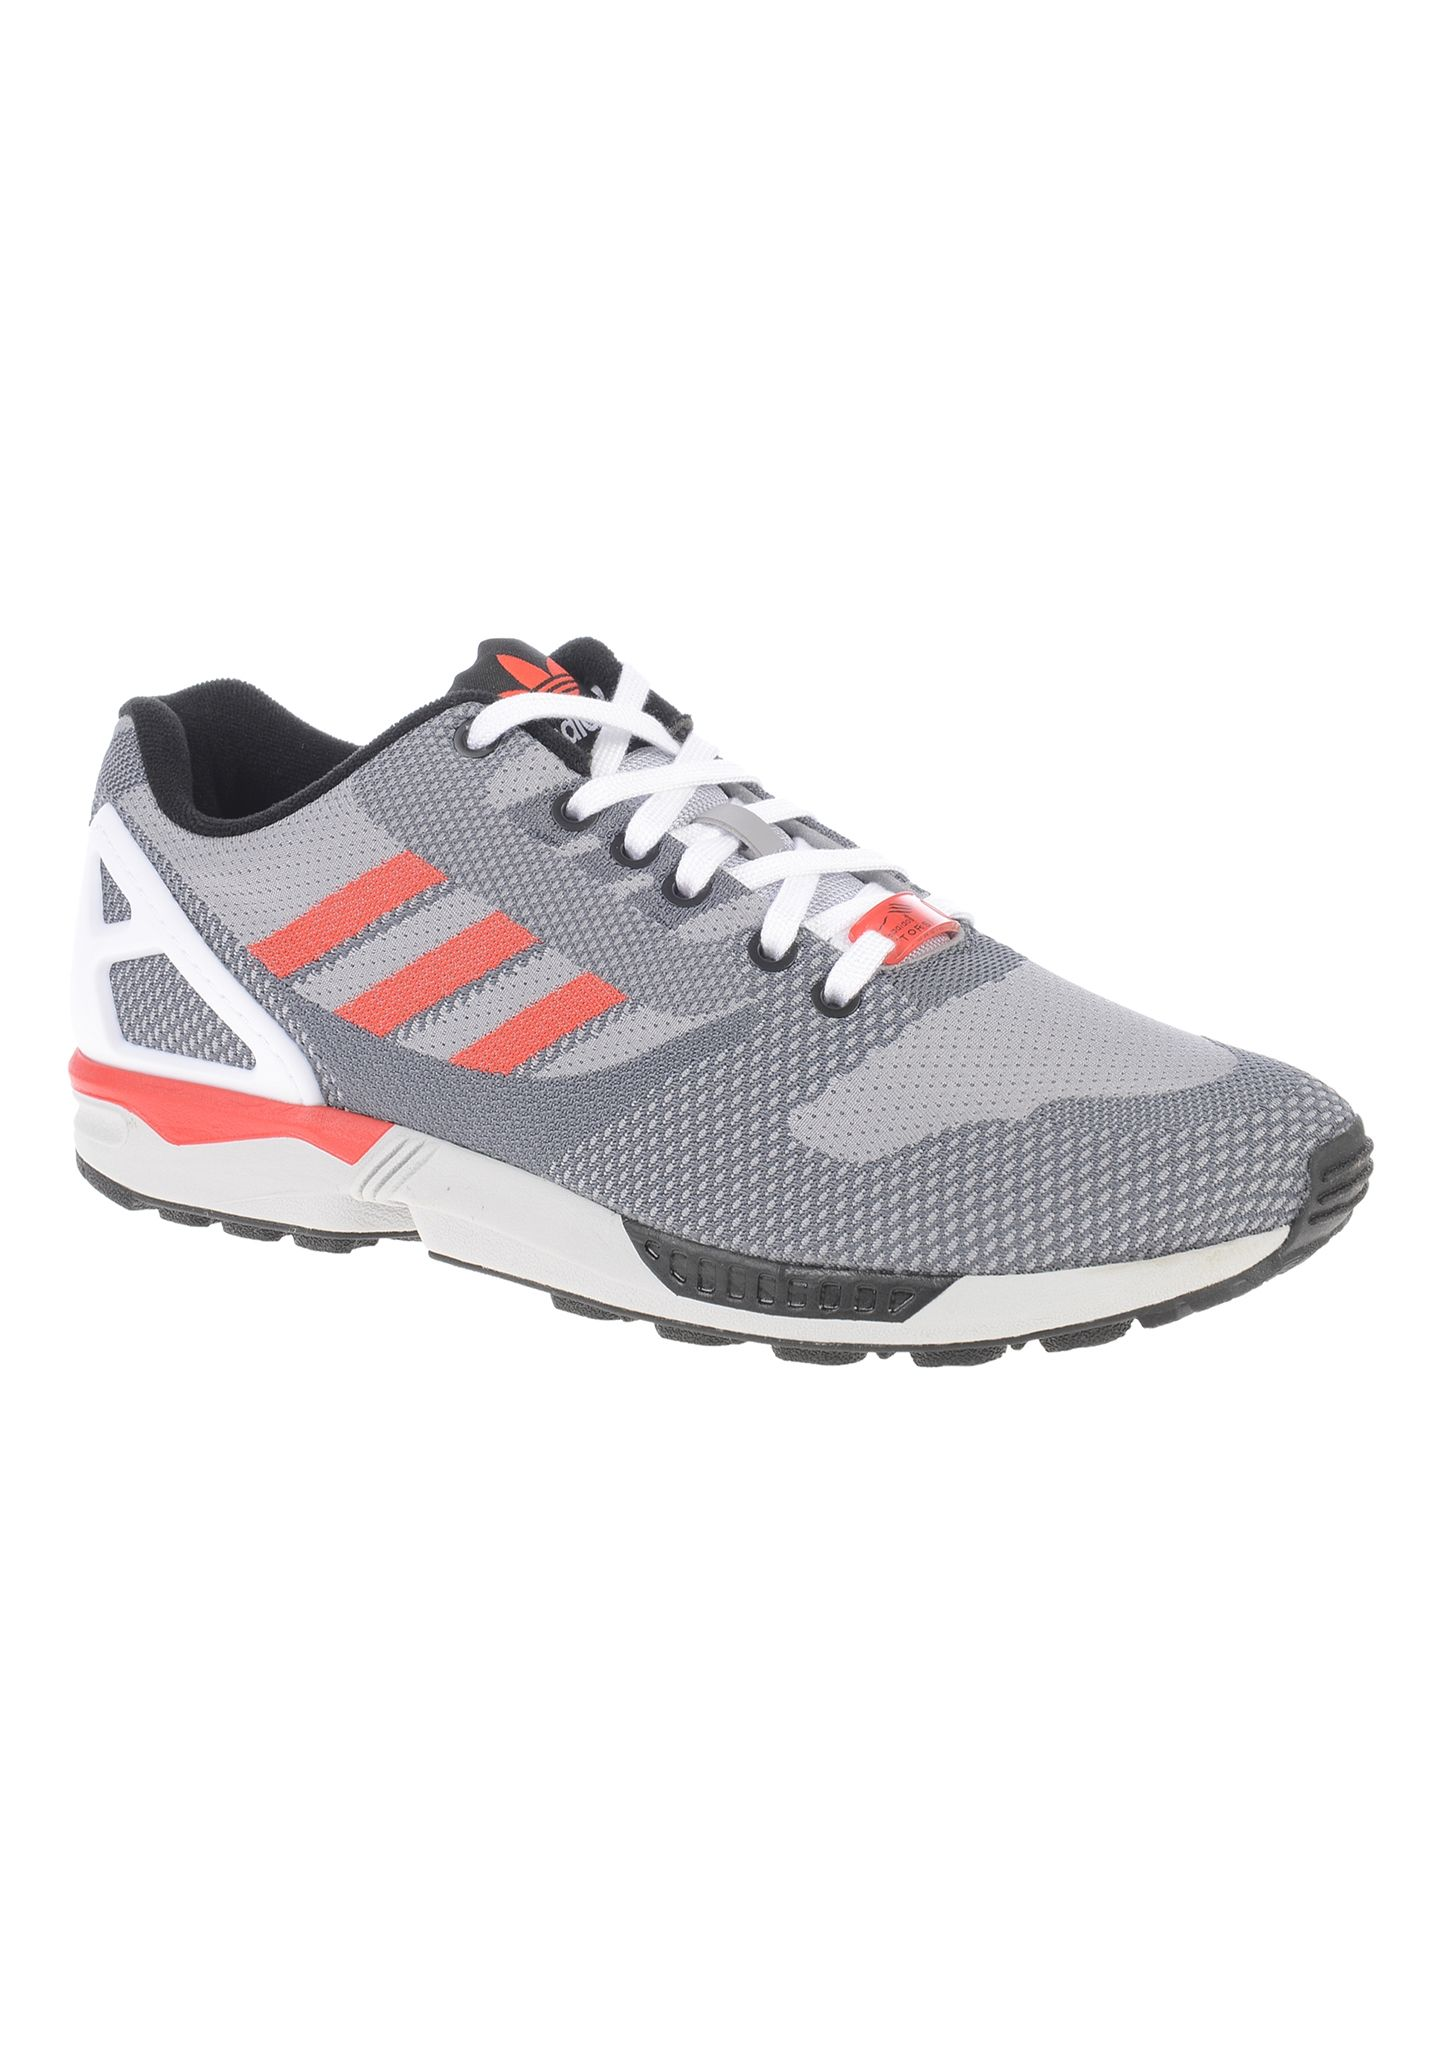 adidas Originals ZX Flux Weave - Sneaker für Herren - Grau - Planet Sports 807b2f9cb1